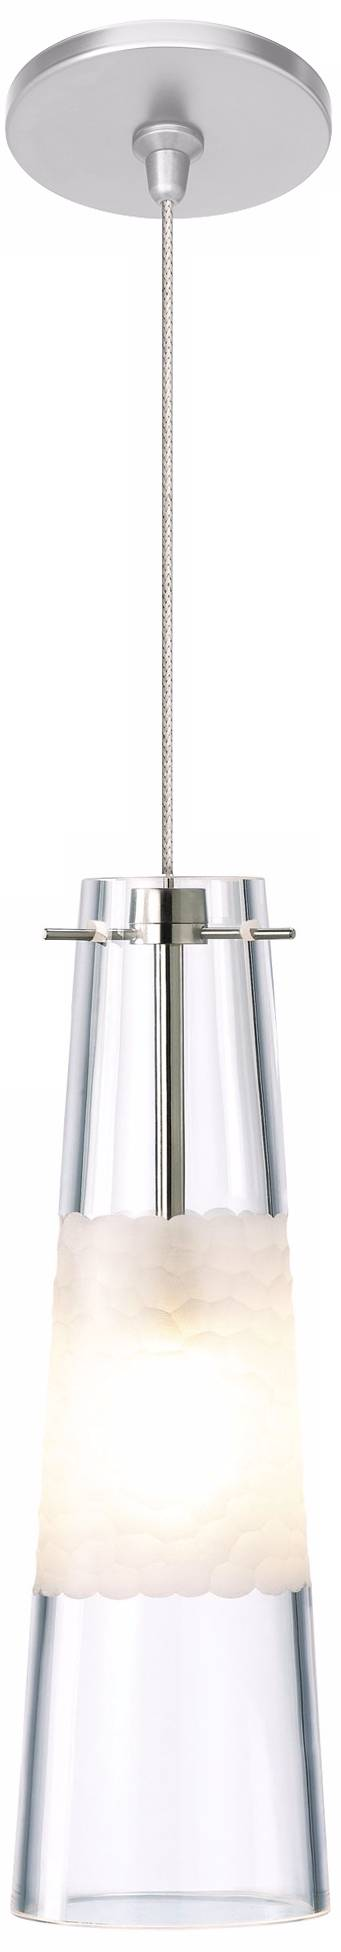 Lbl bonn 3 3 4 wide clear nickel mini pendant r1259 47250 lamps plus